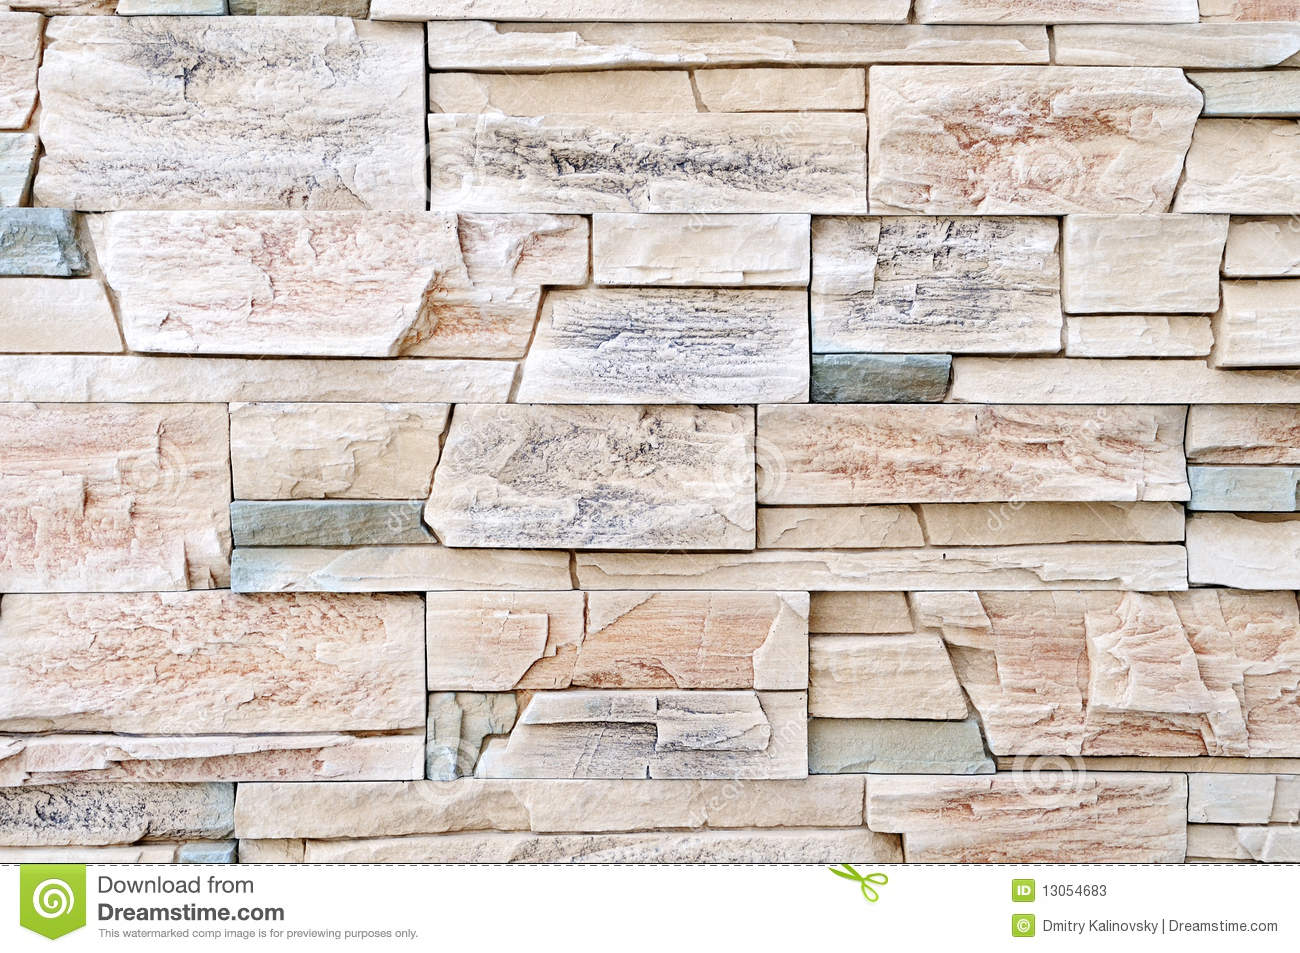 Brick stone wall material stock image image of natural - Exterior wall finishes materials ...